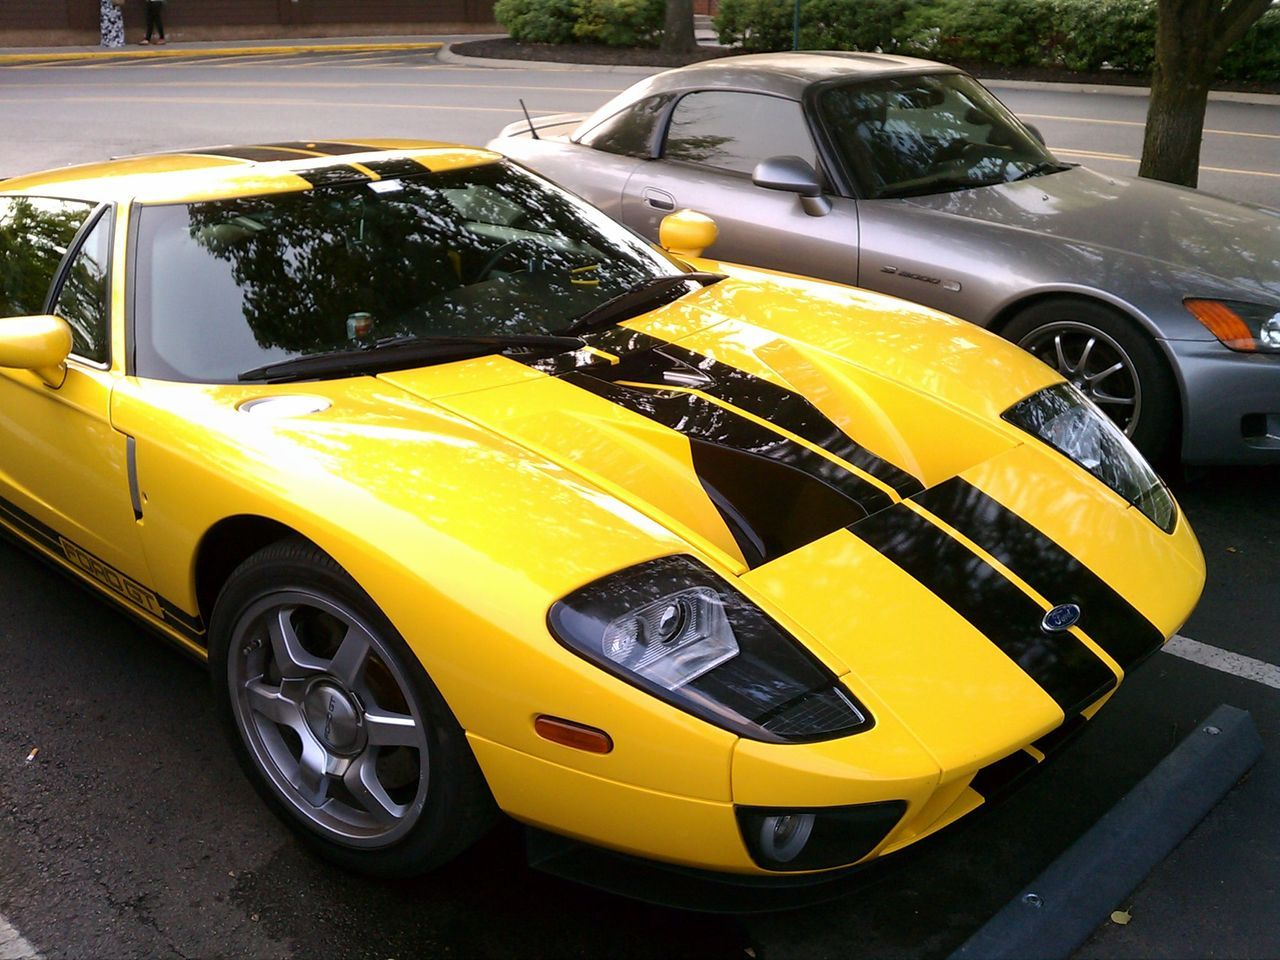 Ford Gt Bubblebee Cars Ford Gt Cars Ford